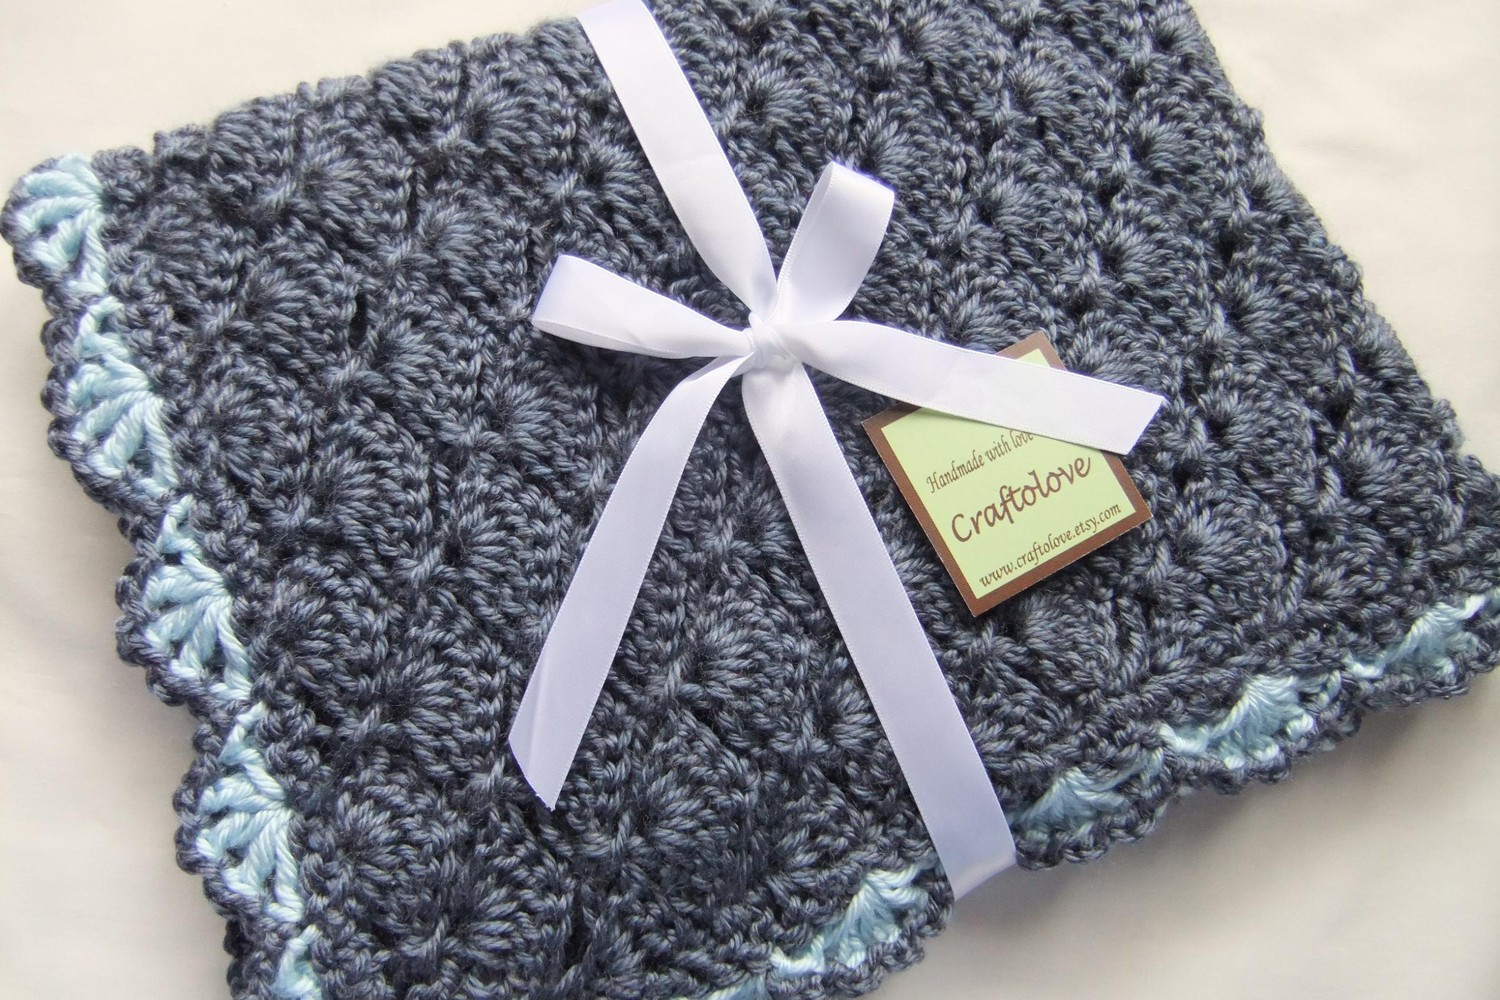 Baby Boy Crochet Blanket Patterns Best Of Crochet Baby Afghan Patterns for Boy Of Amazing 48 Pics Baby Boy Crochet Blanket Patterns